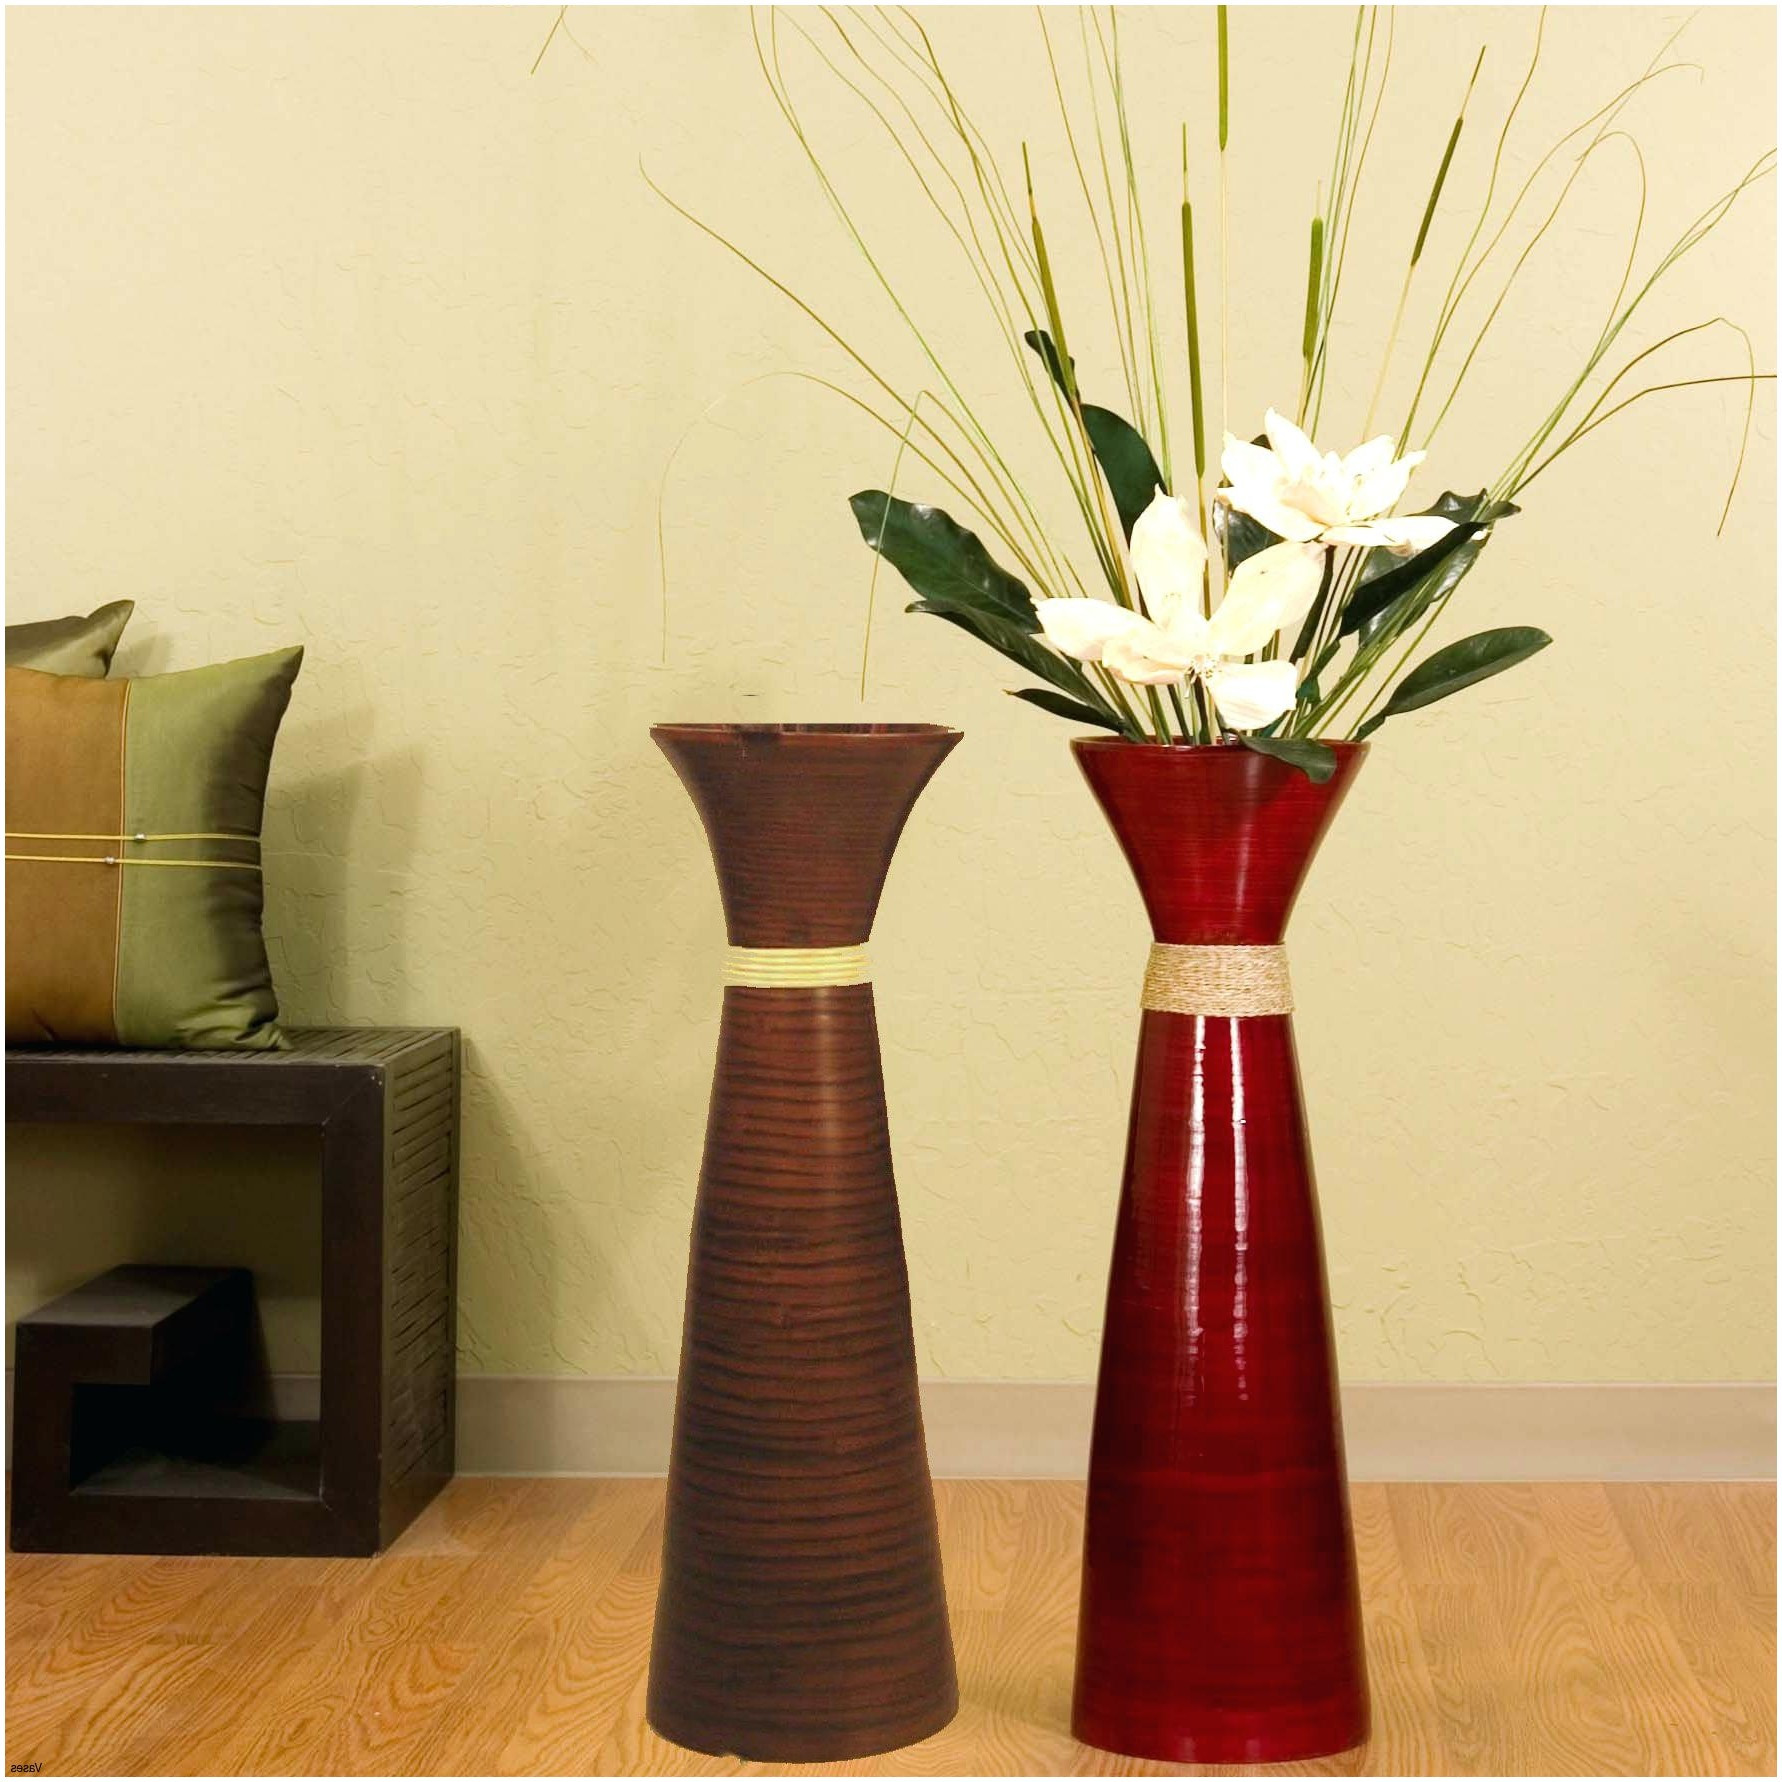 led vase base of 27a‰lagant led decoration anciendemutu org inside floor decor vase tall ideash vases fill a substantial with arrangement led branches it s another